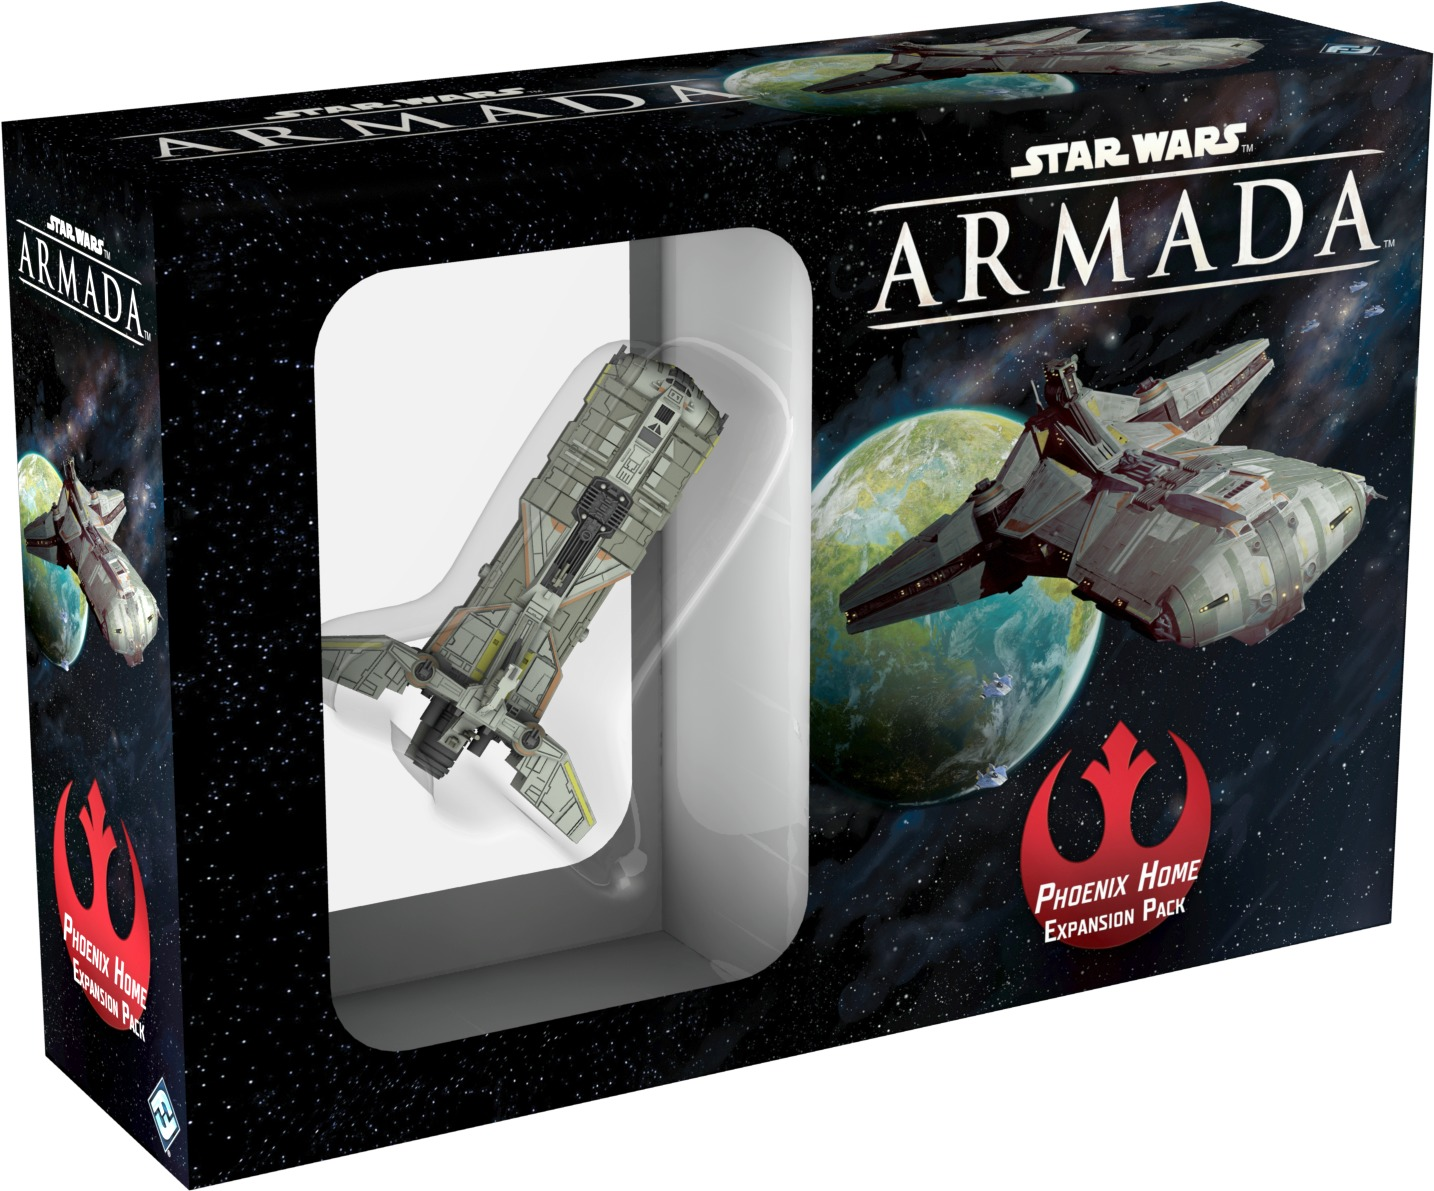 Star Wars Armada Phoenix Home Expansion Pack image